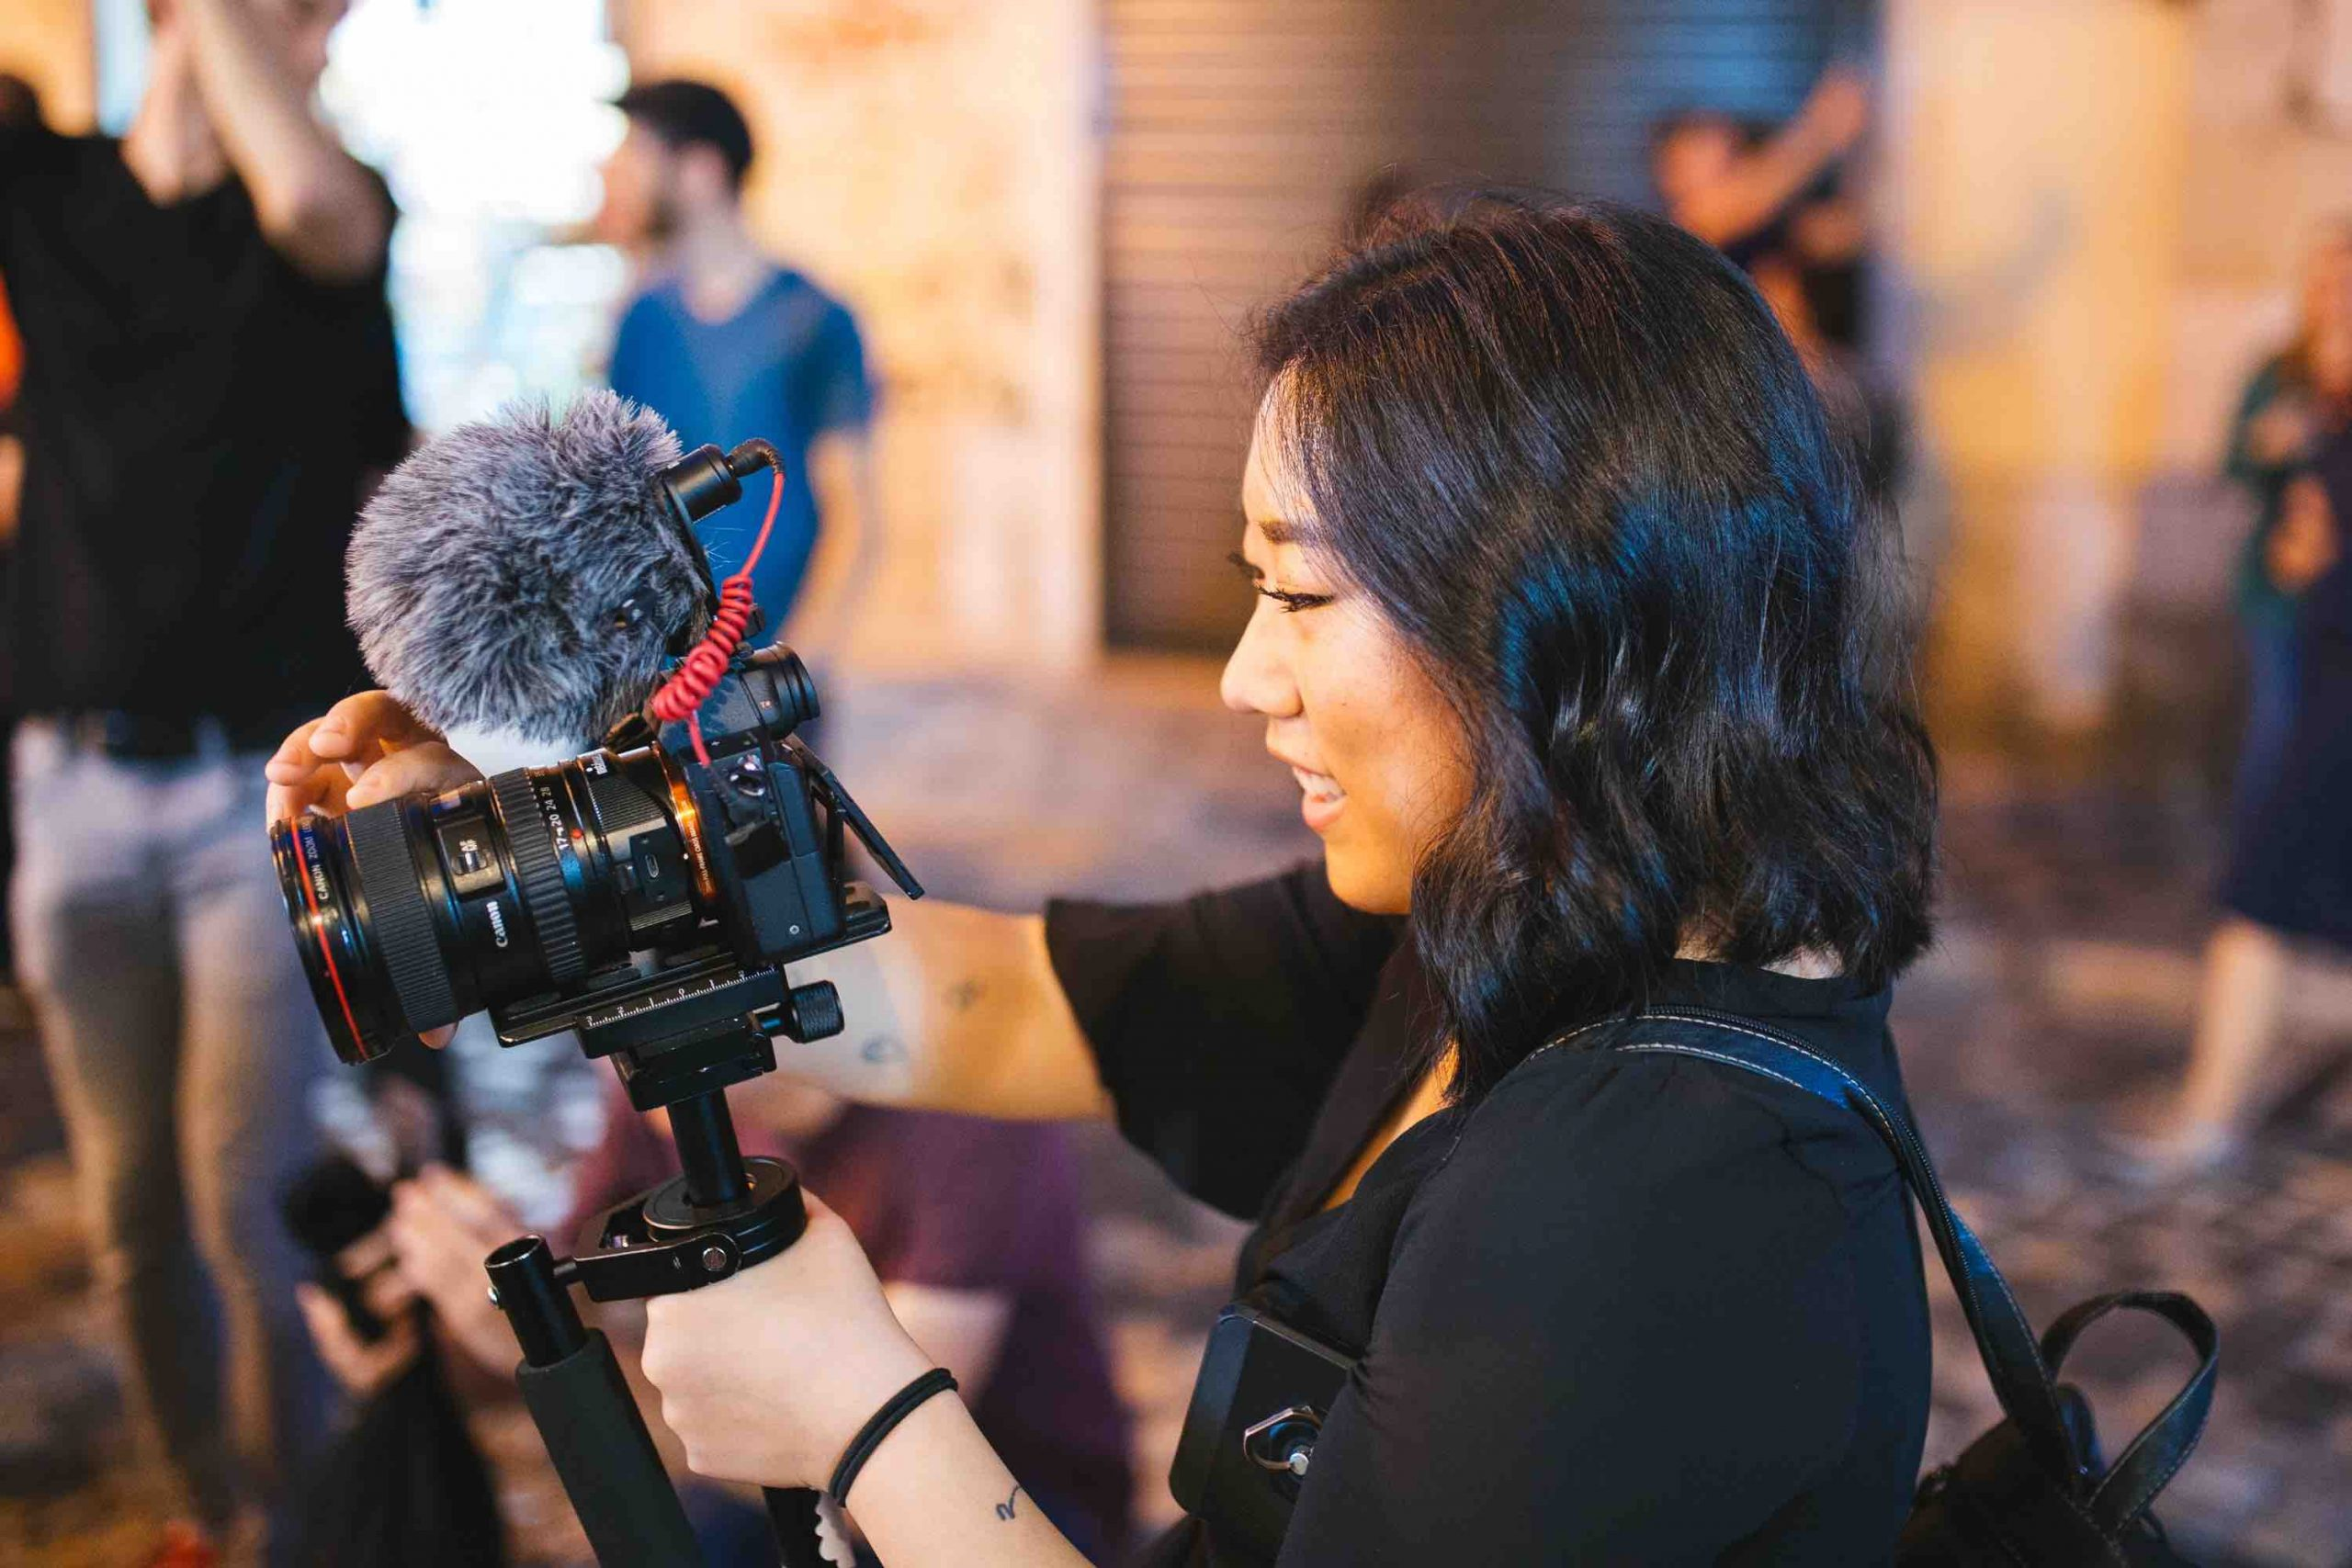 In the next normal, video content is a highly effective medium. That's exactly what this young woman is doing, shooting an event with her videocam